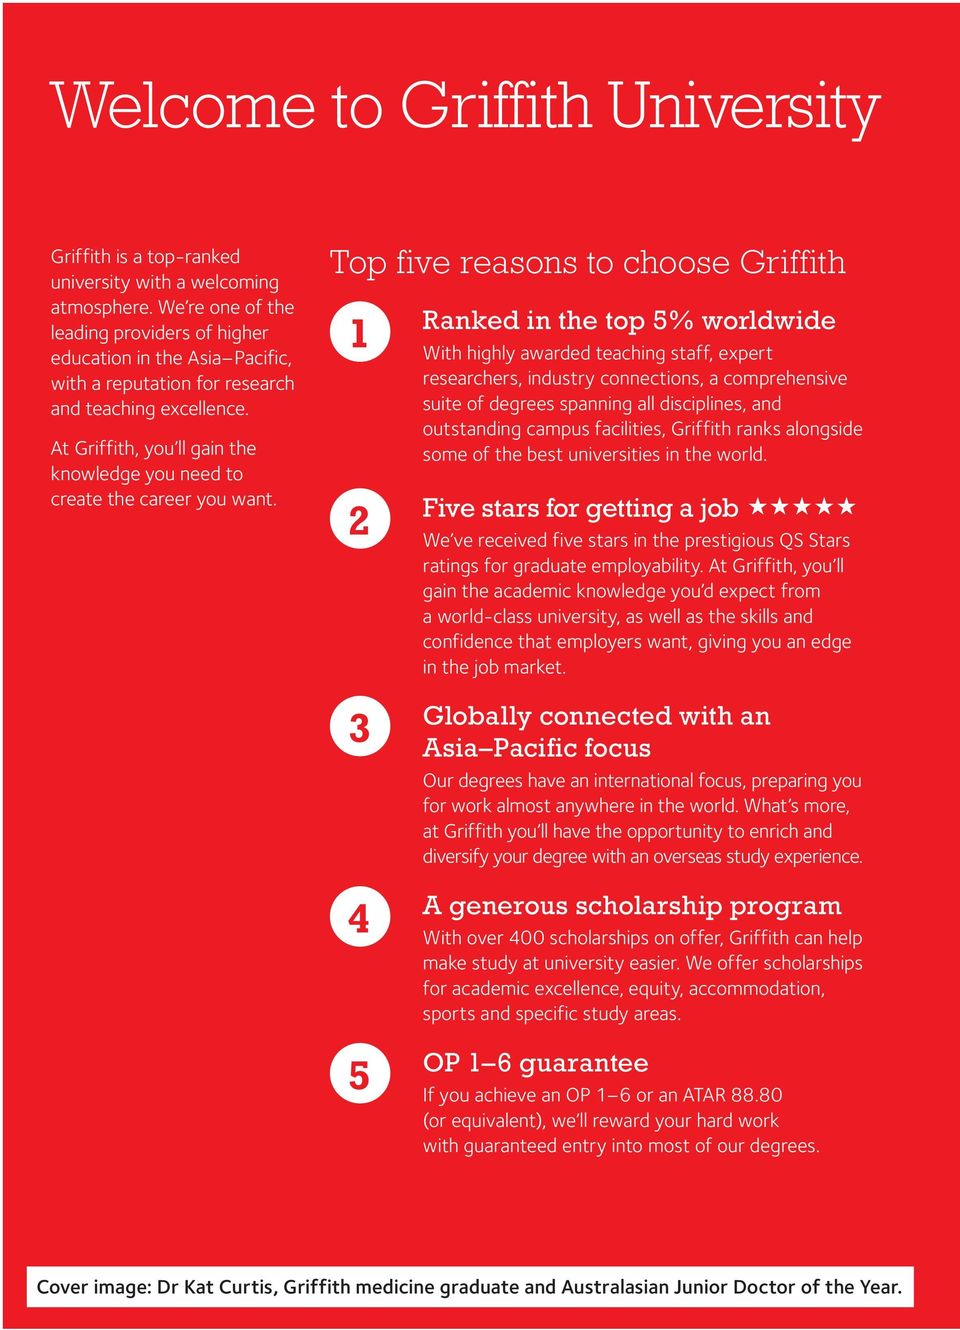 At Griffith, you ll gain the knowledge you need to create the career you want.